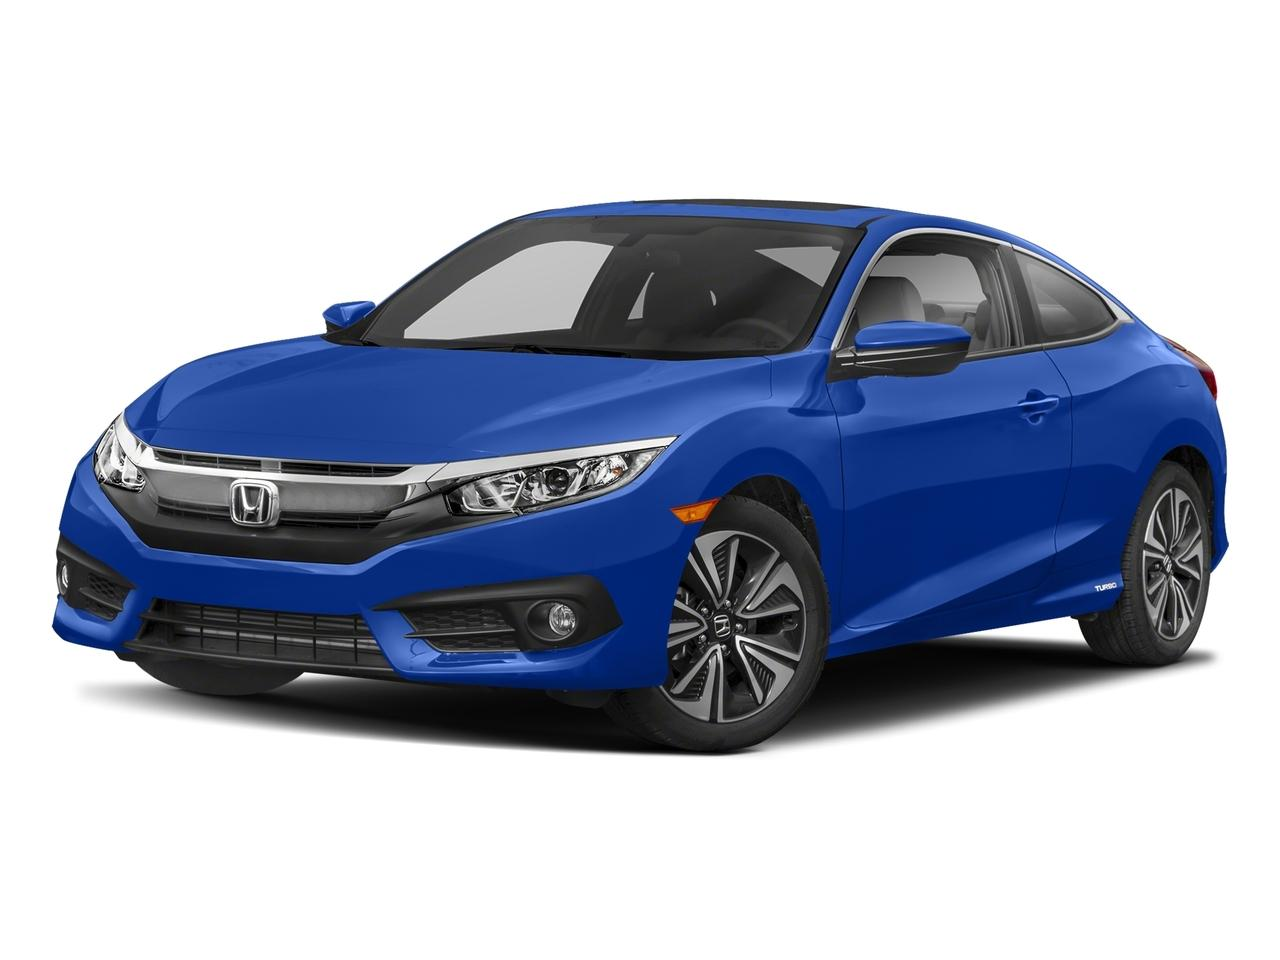 2018 Honda Civic Coupe Vehicle Photo in Trevose, PA 19053-4984